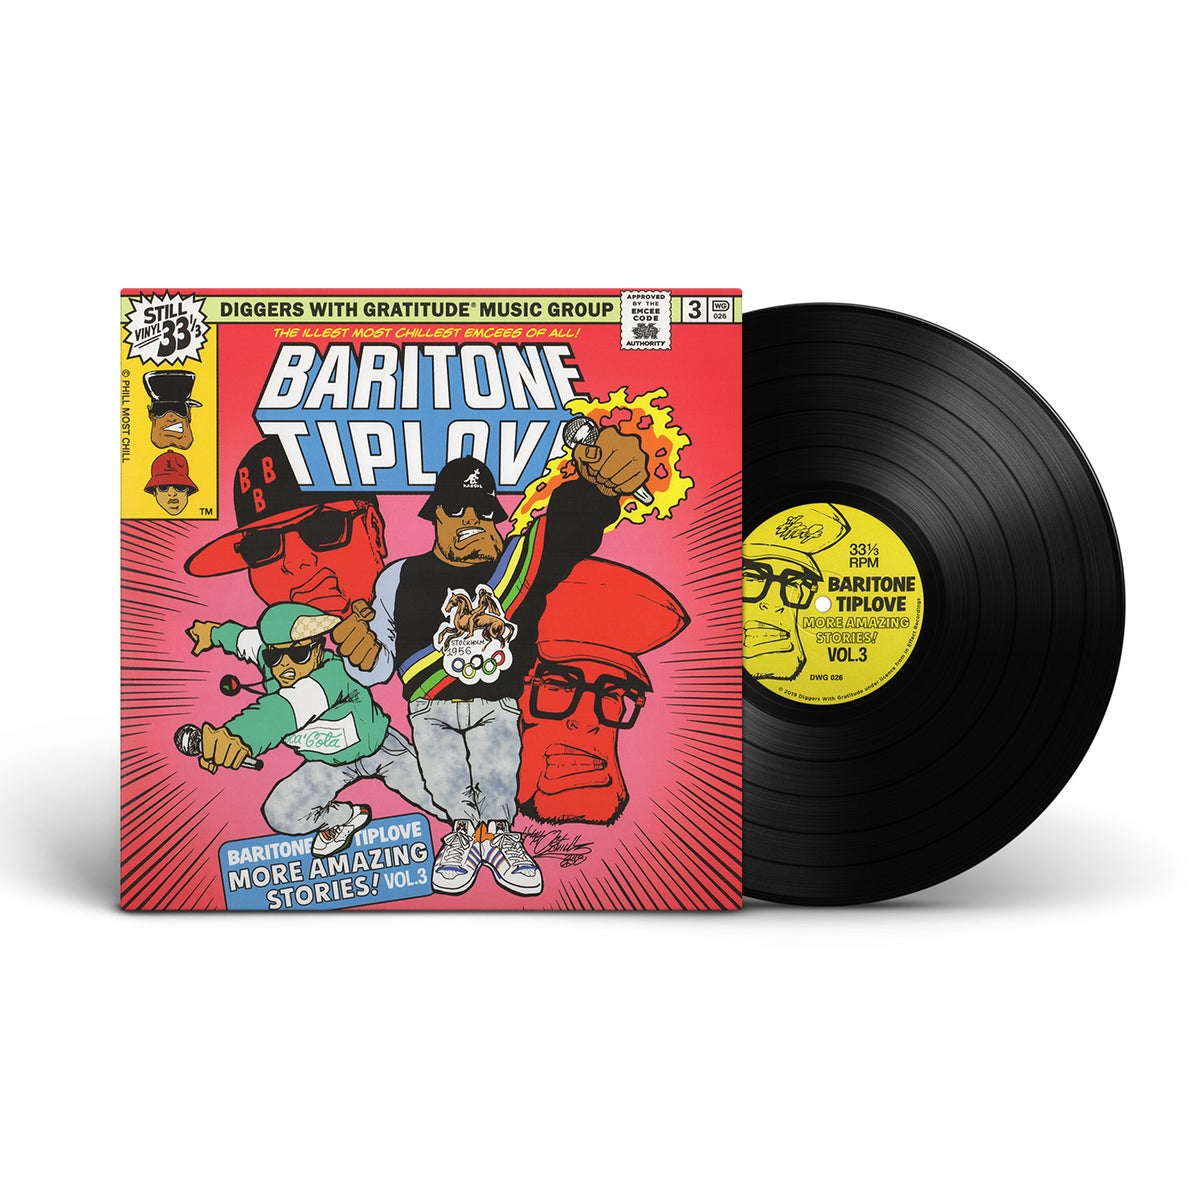 "Image of Baritone Tiplove - More Amazing Stories! Vol. 3 - DWG exclusive 140g black vinyl and 7"" BUNDLE"